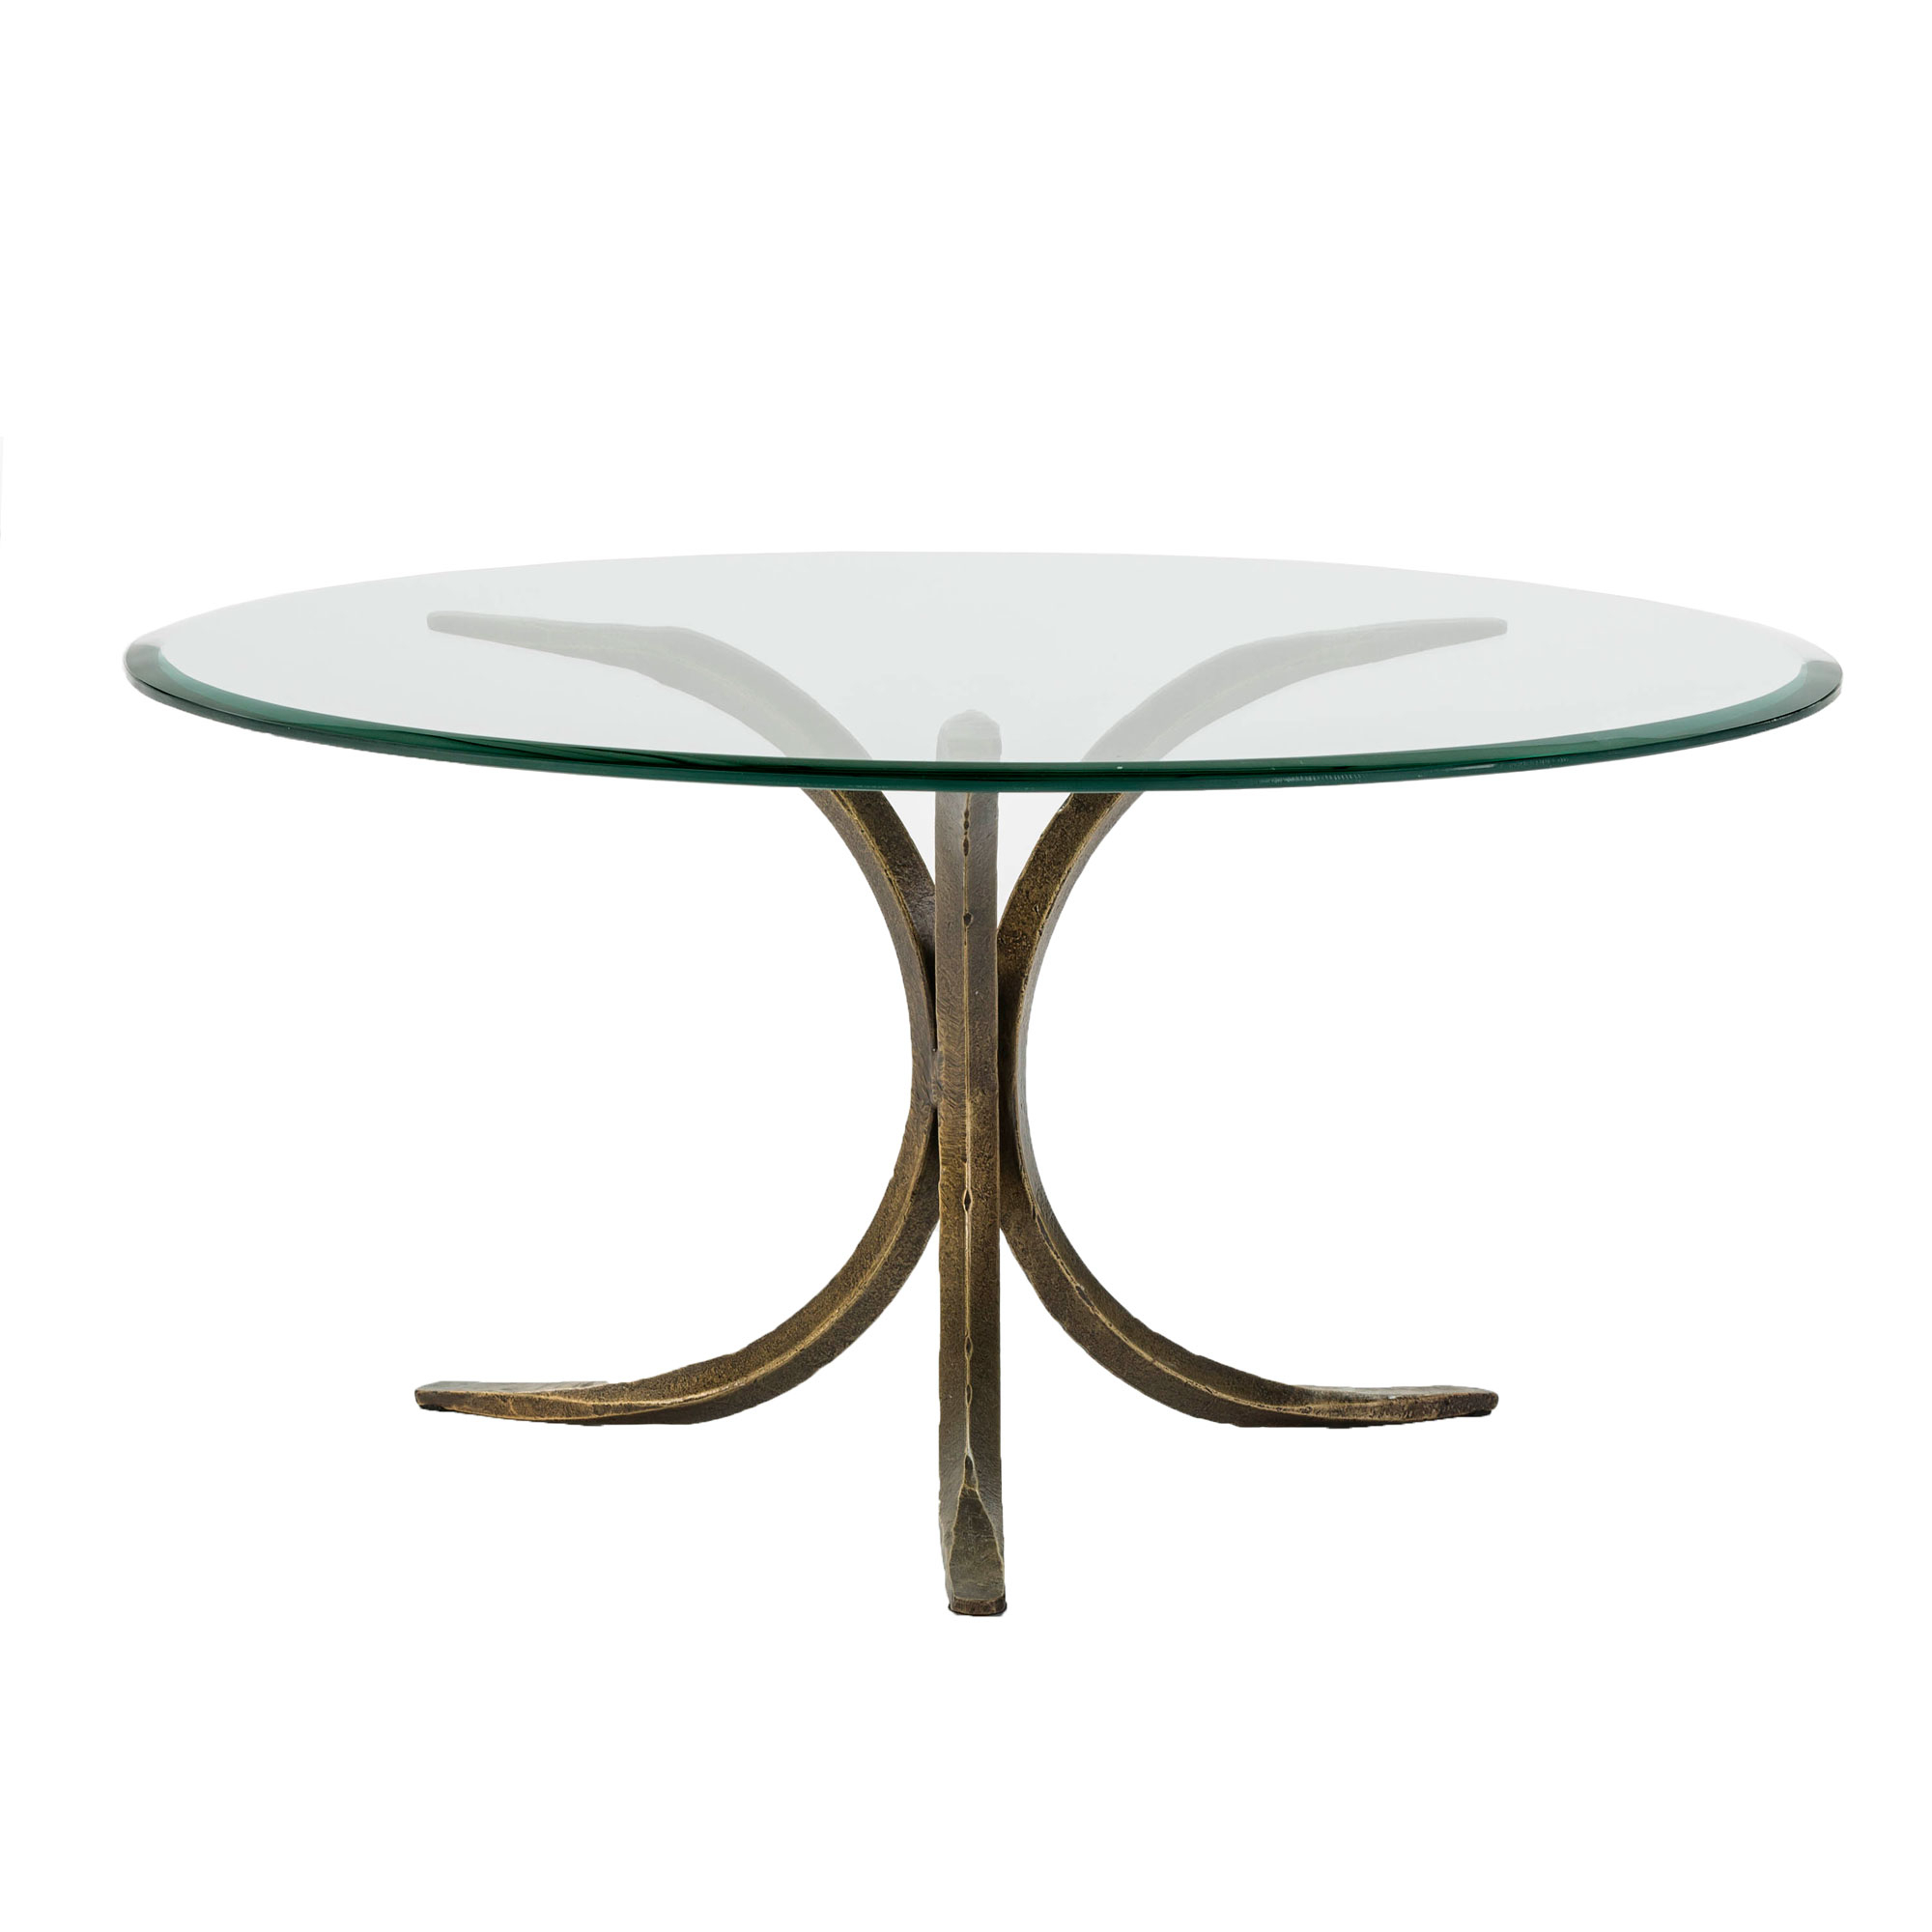 Best And Newest Skeena Coffee Table Within Acacia Dining Tables With Black Rocket Legs (Gallery 24 of 30)